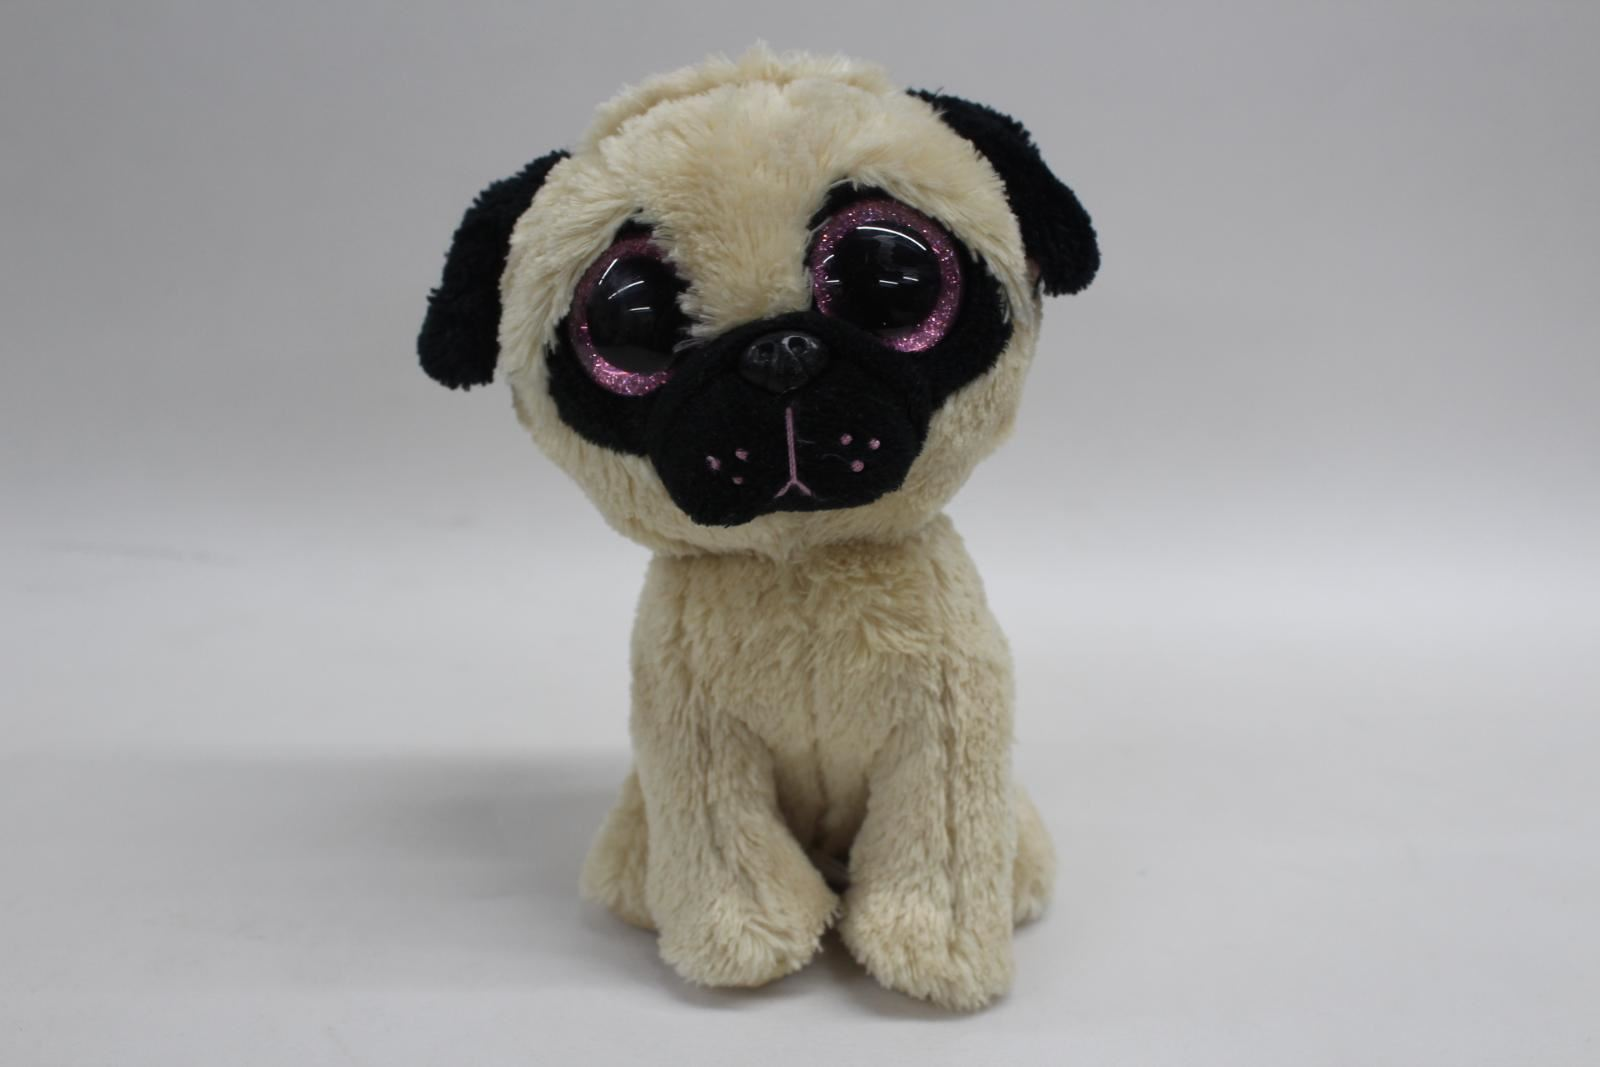 TY-Beanie-Boo-Pugsley-Retired-6-034-Plush-Dog-Collectible-Cuddly-Toy-Pink-Eyes